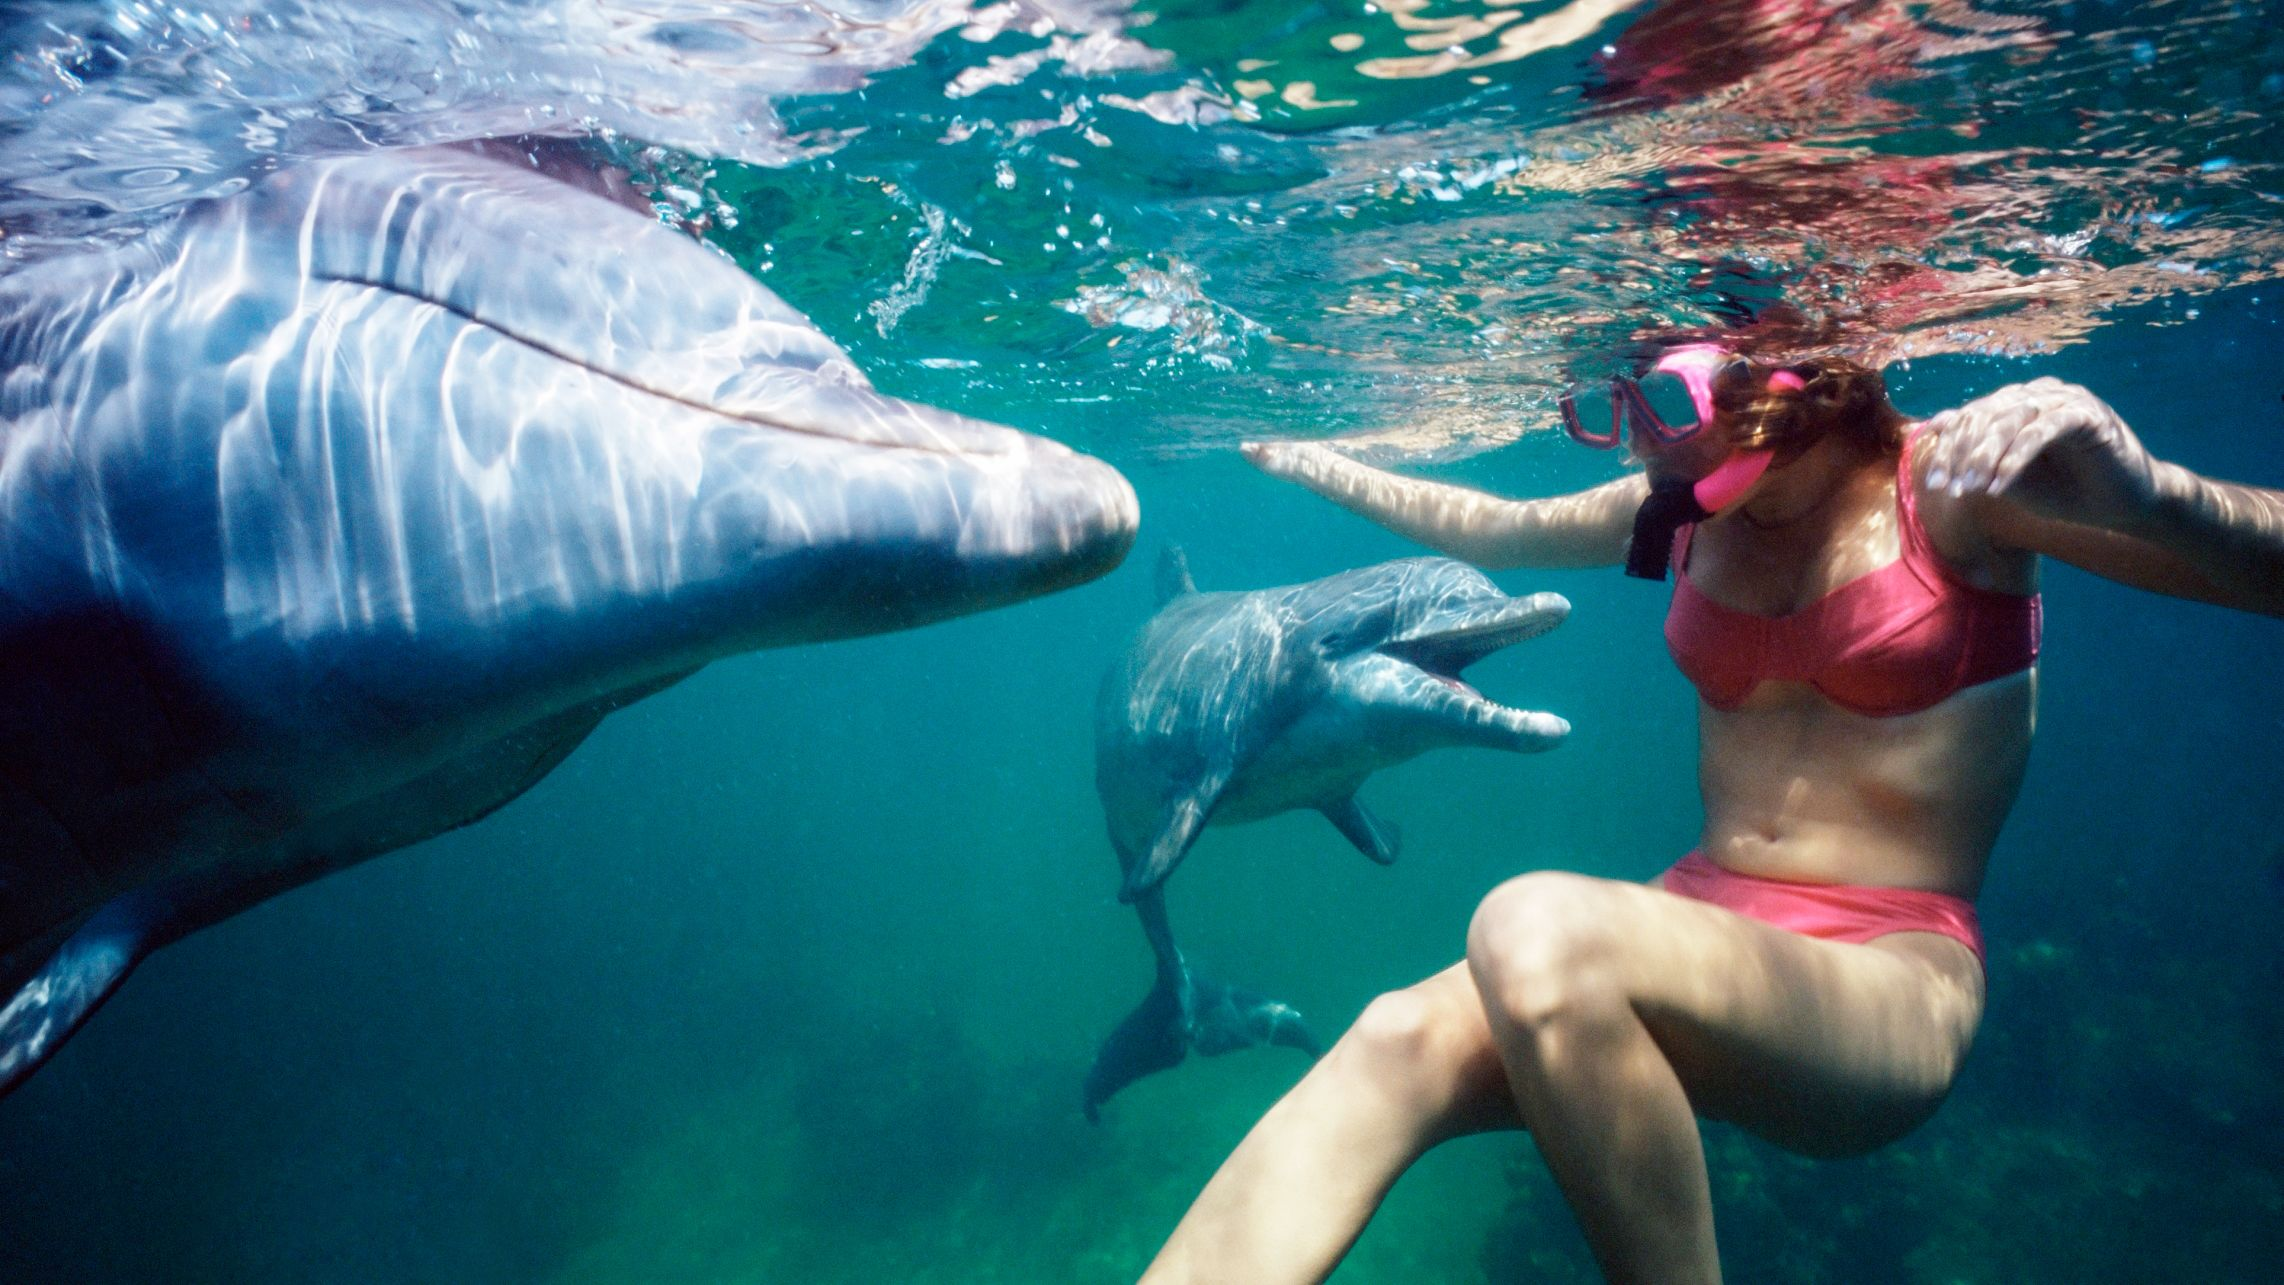 Girl snorkeling with dolphins in the Southport Kayak, Snorkel and Fish Feeding Tour in Australia